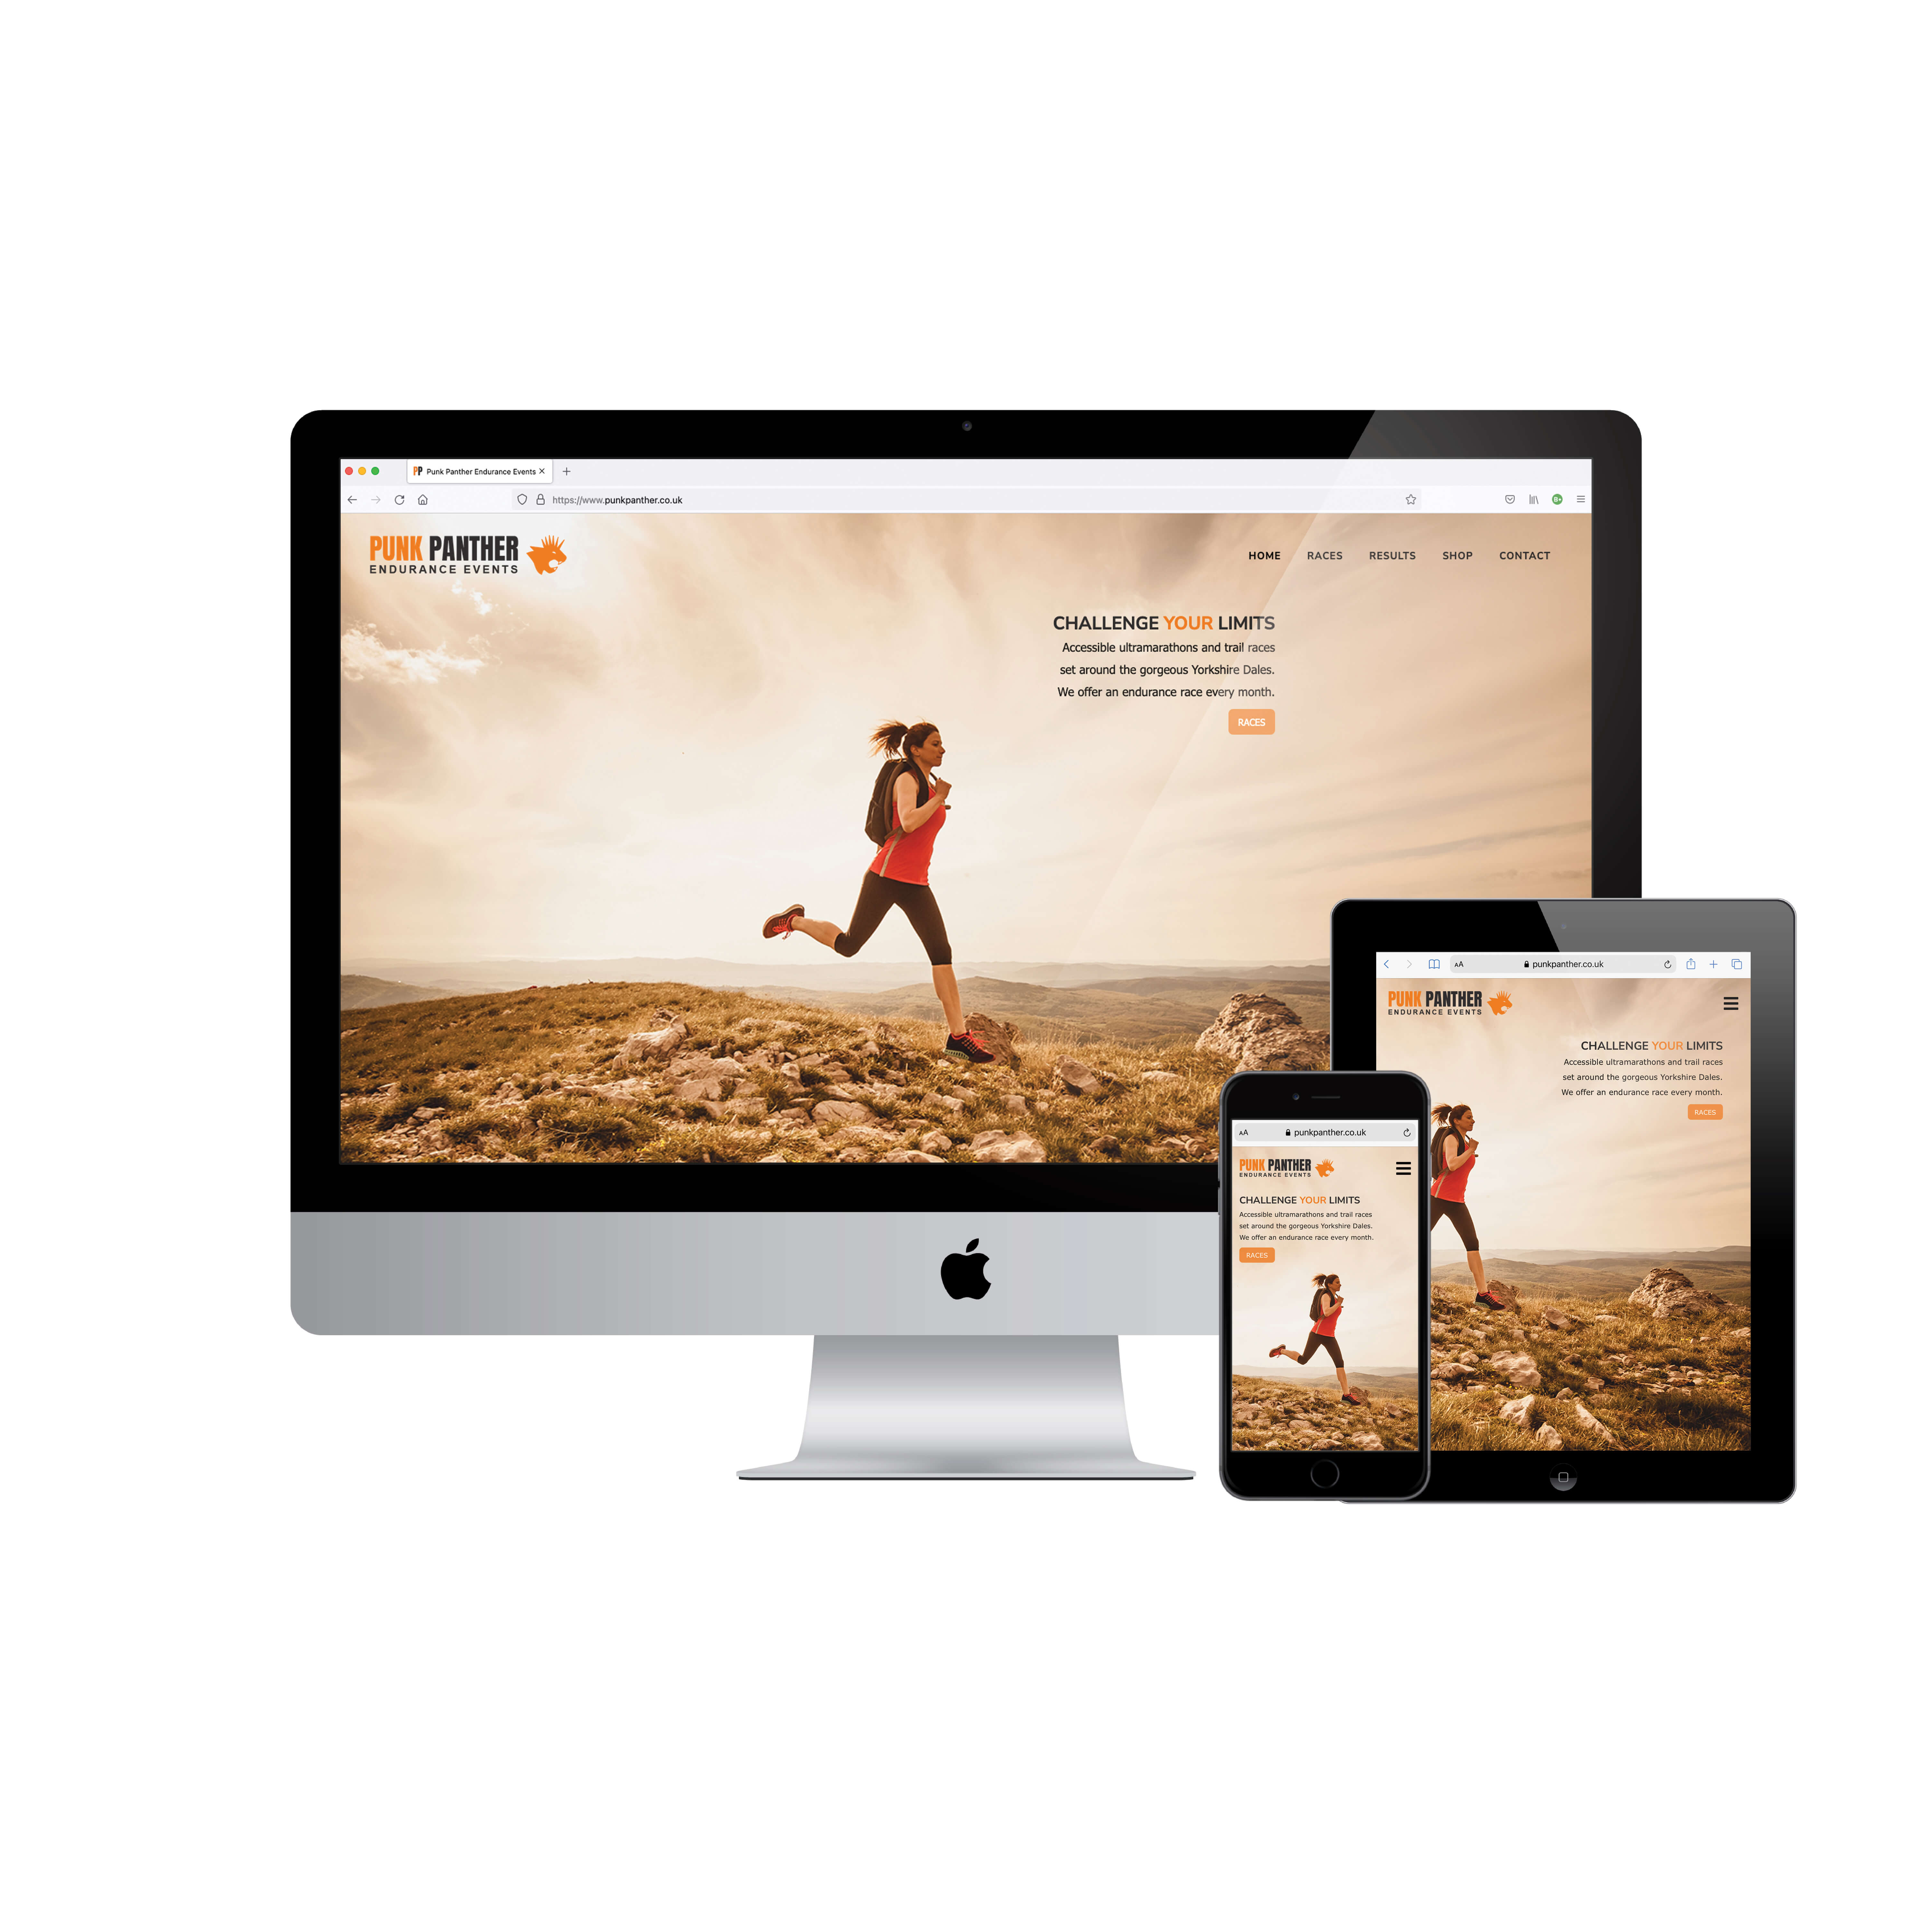 Mockup of home screens for featured website on desktop, tablet and mobile